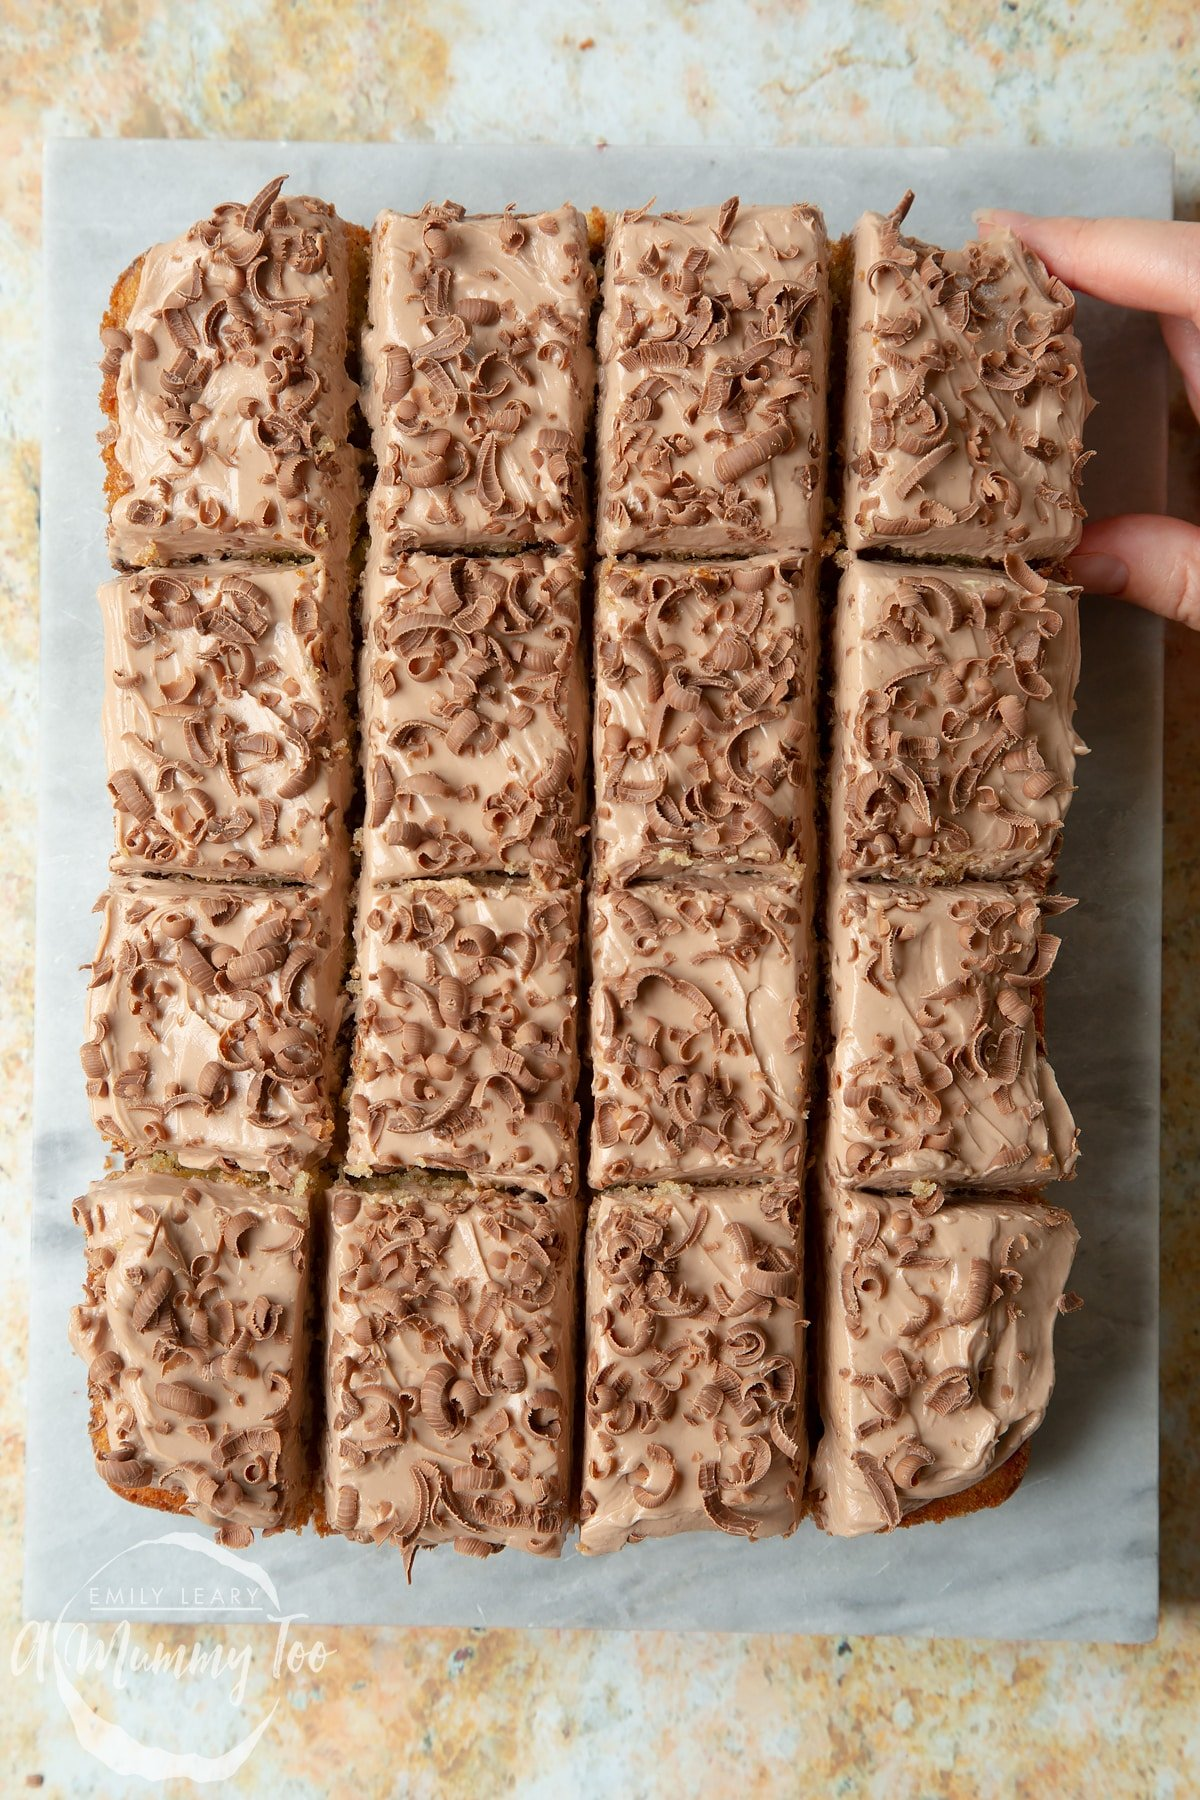 Chocolate chip tray bake on a marble board. A hand reaches to take a square.